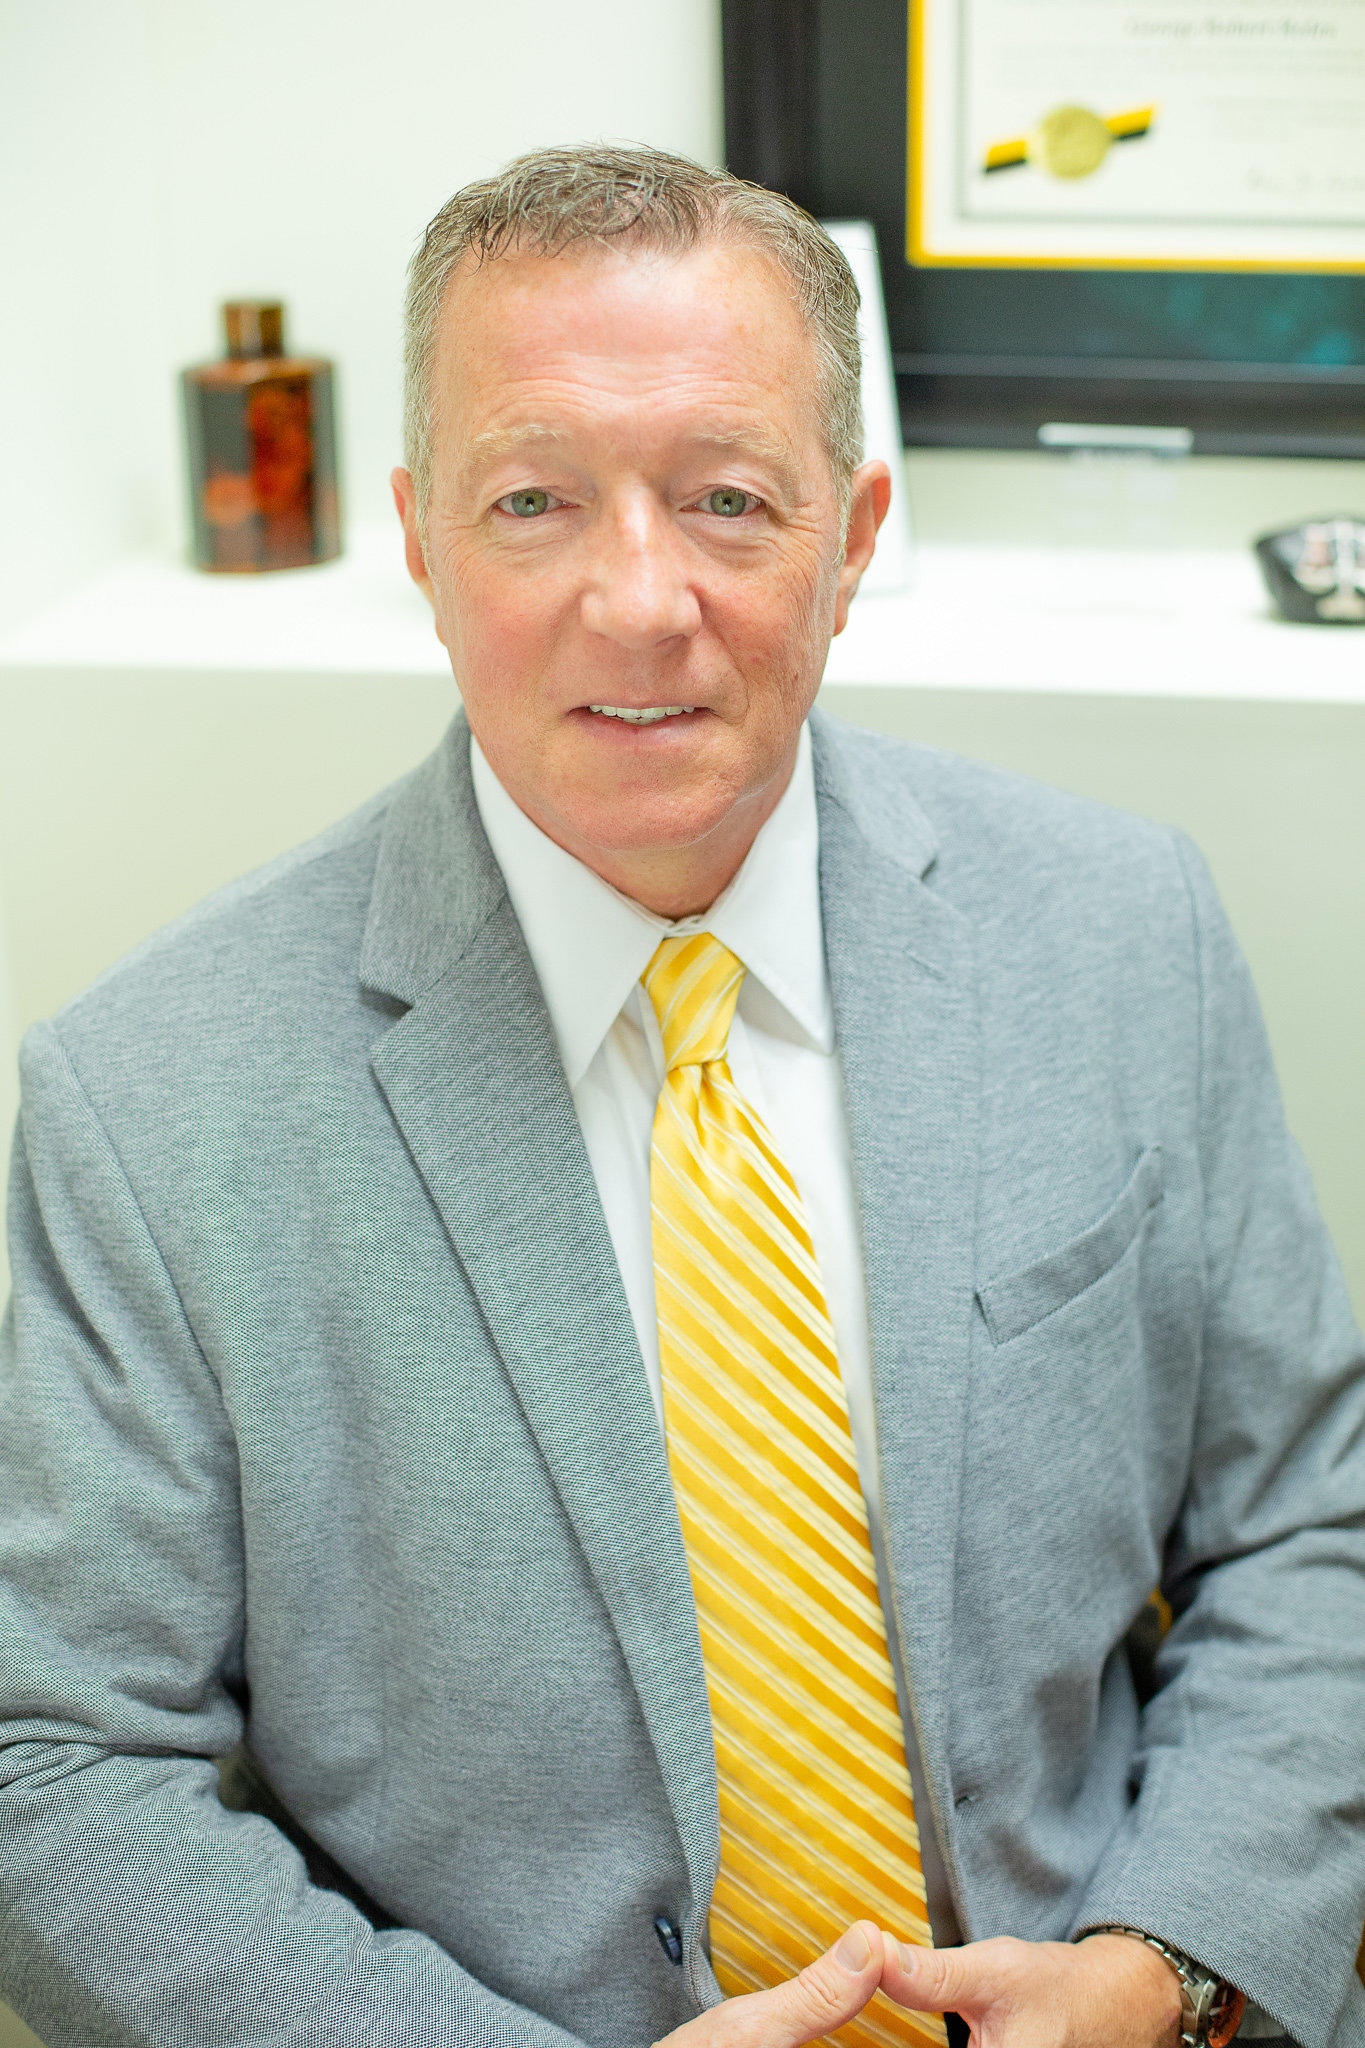 George R. Roles Attorney and Counselor at Law image 1